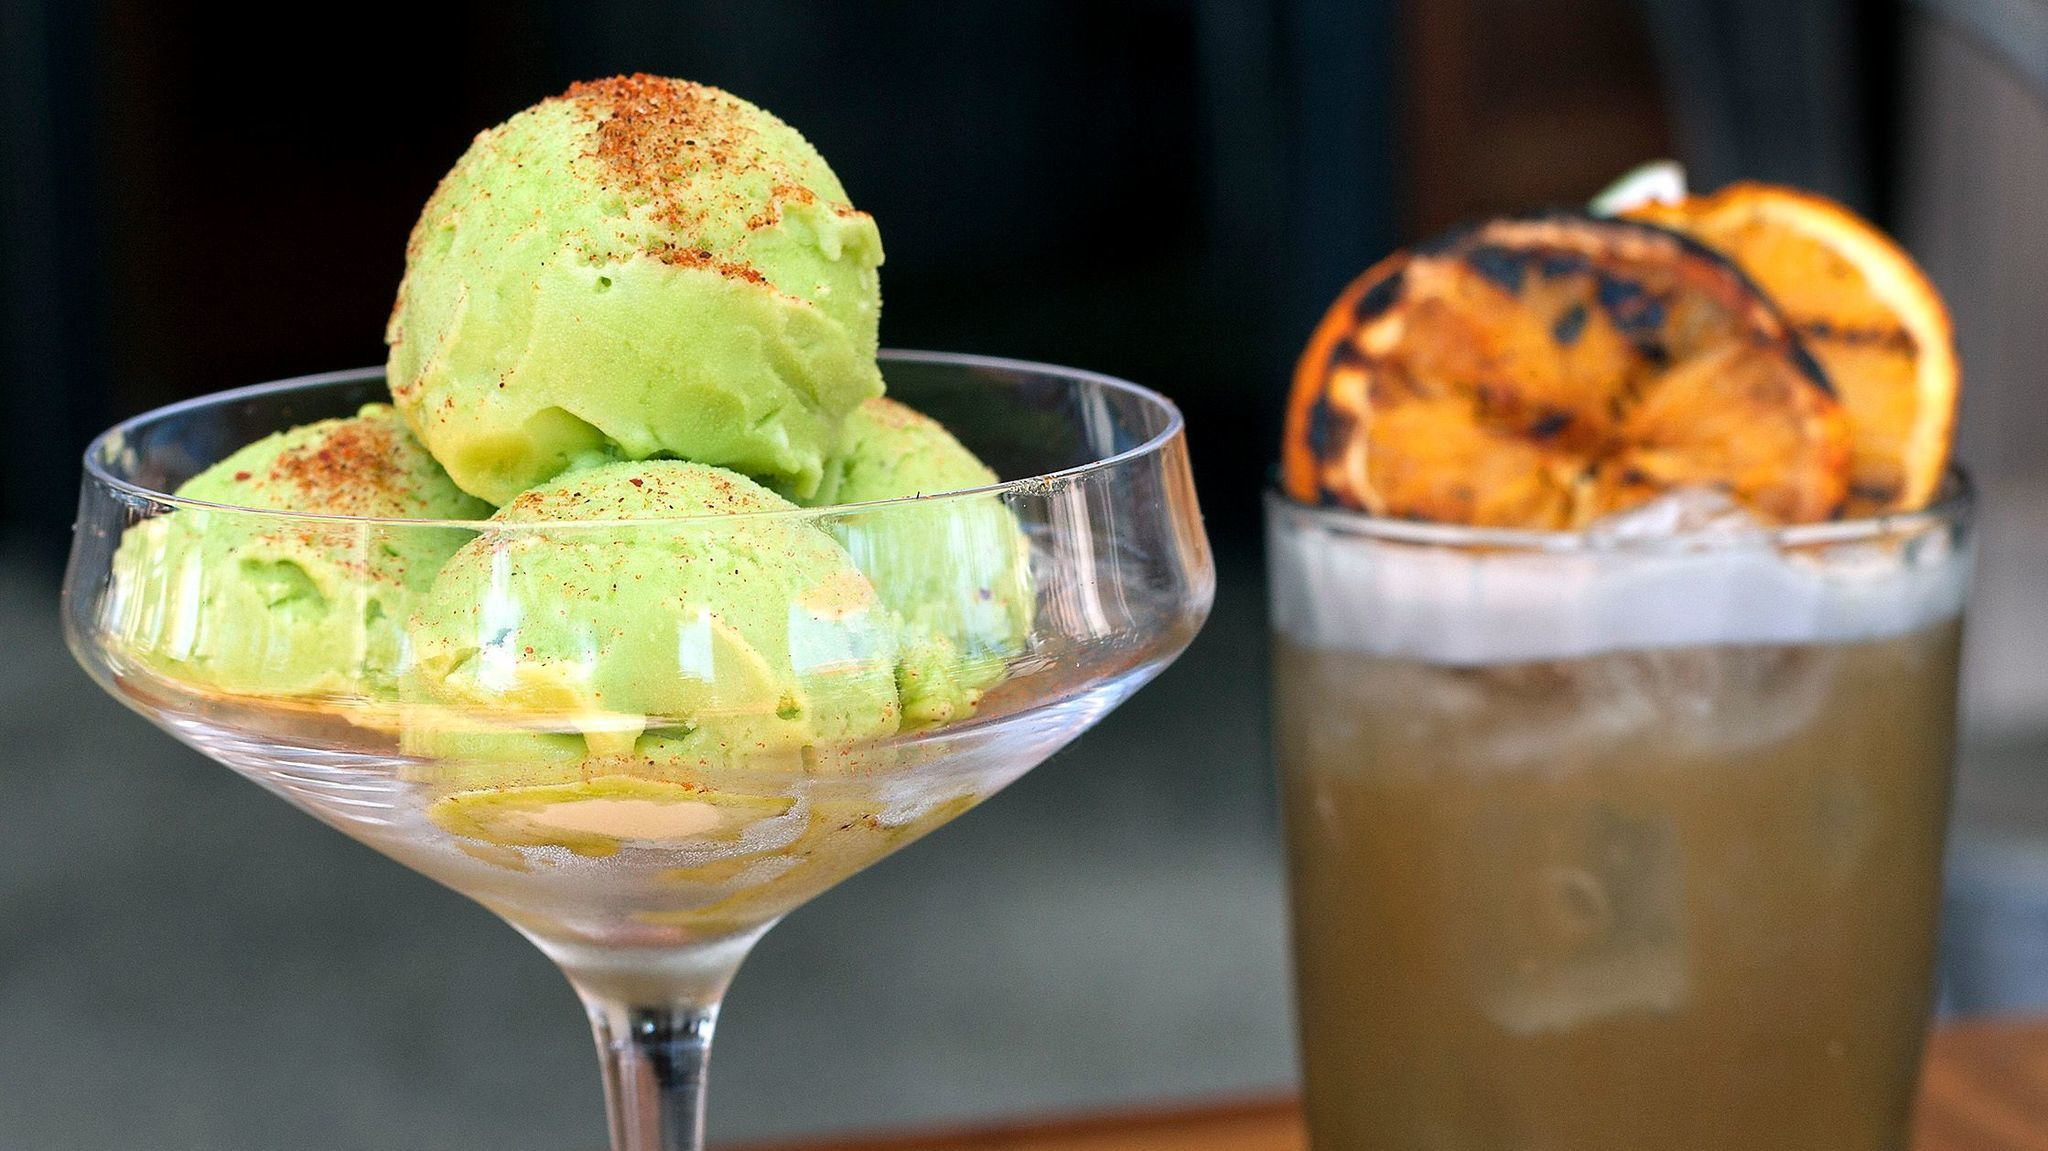 Puesto's nopal sorbet, made from the meat of desert cactus, is best when savored with a shot of mezcal.